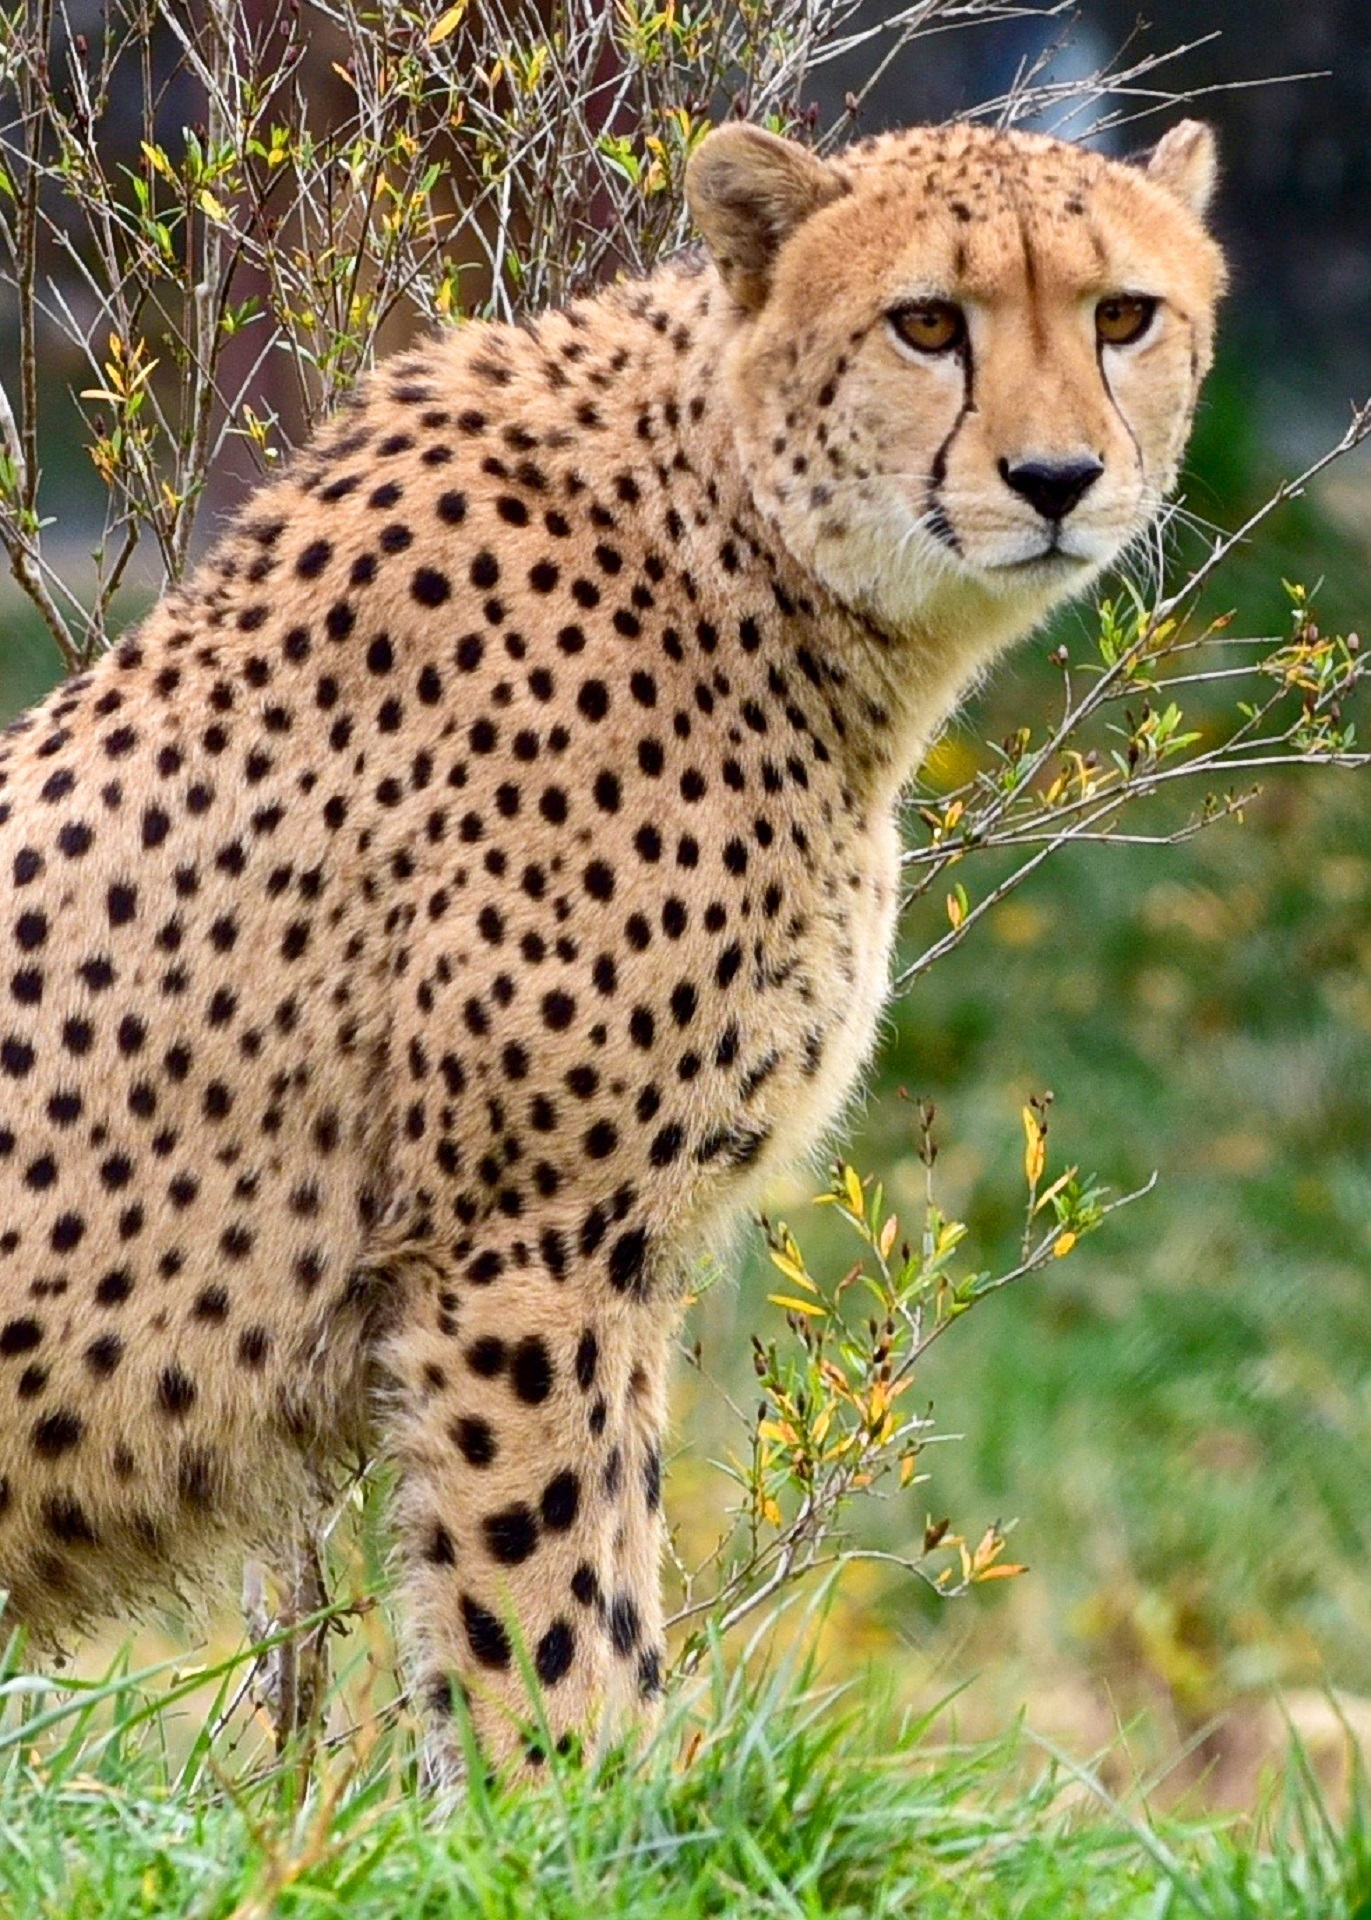 Safari Animal Wallpaper Adult Cheetah 183 Free Stock Photo